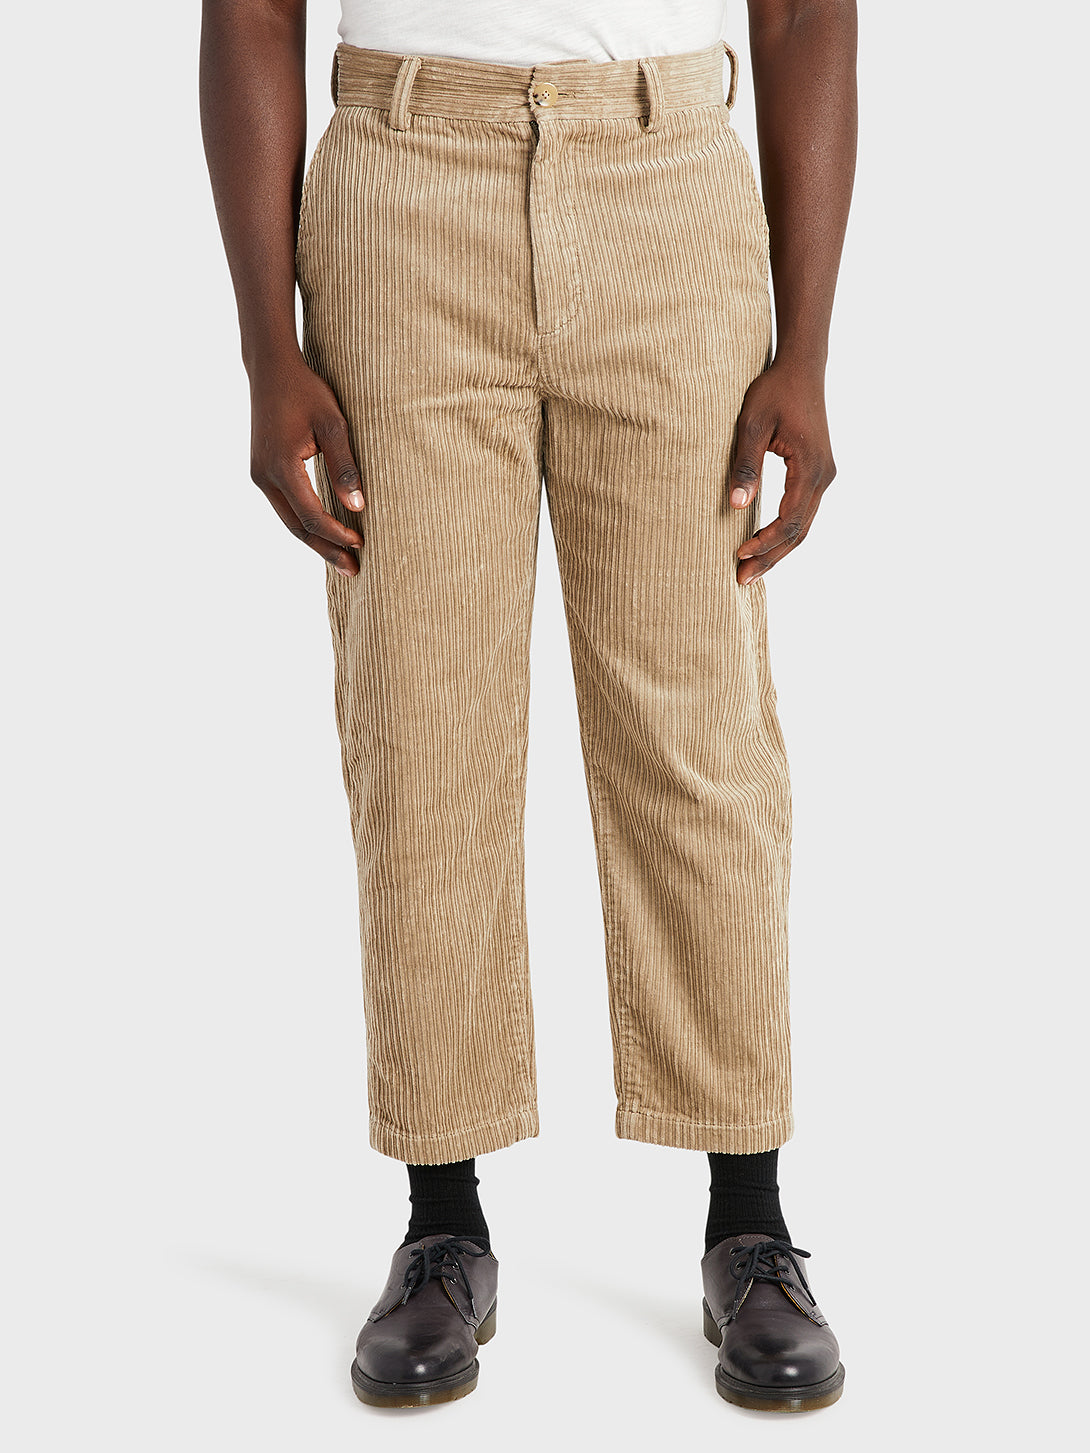 black friday deals ONS Clothing Men's CROSBY CORDUROY PANTS in KHAKI